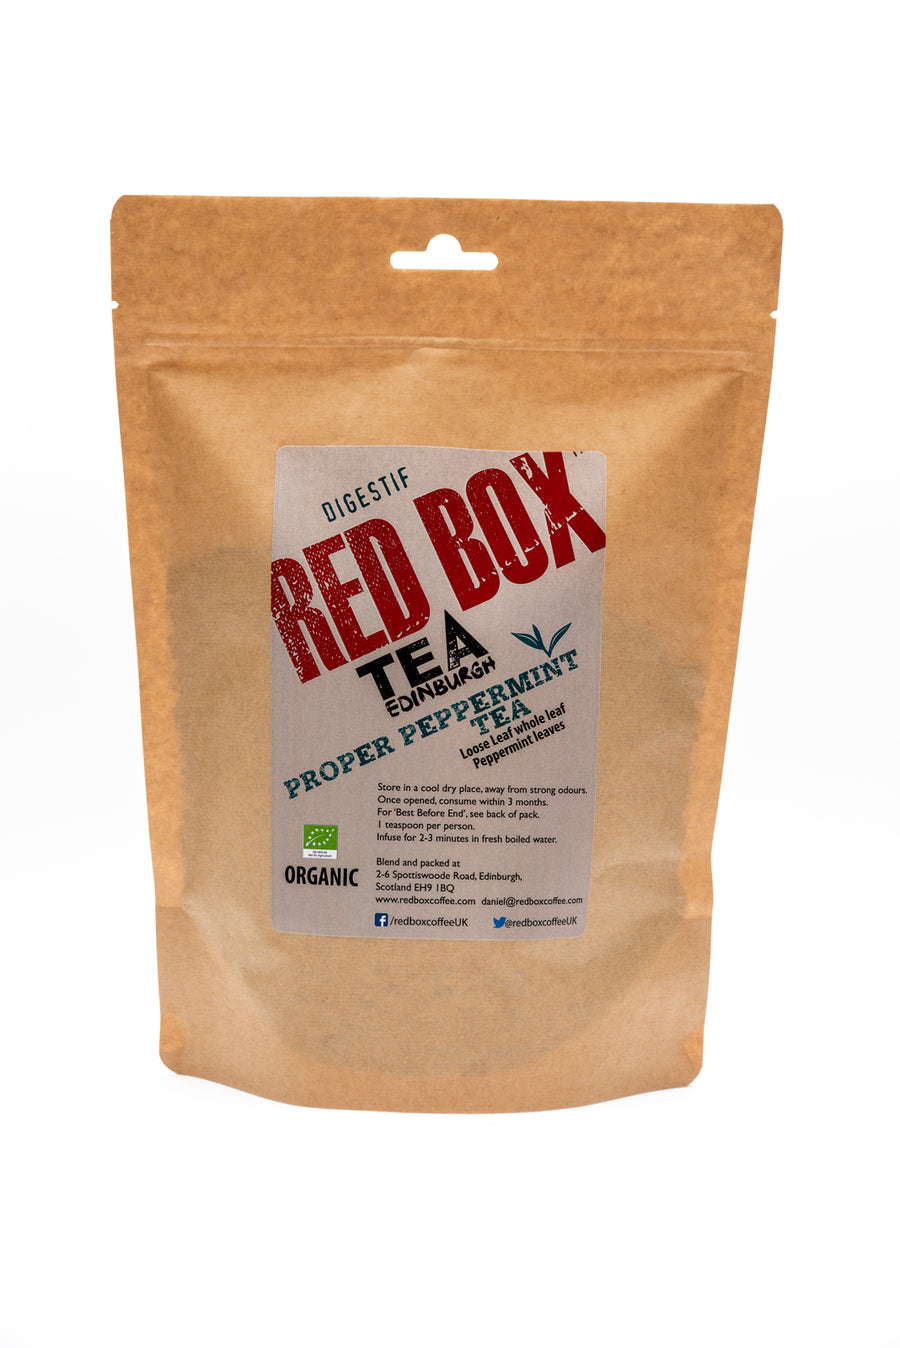 Red Box Tea Proper Peppermint Bio Tea Bags